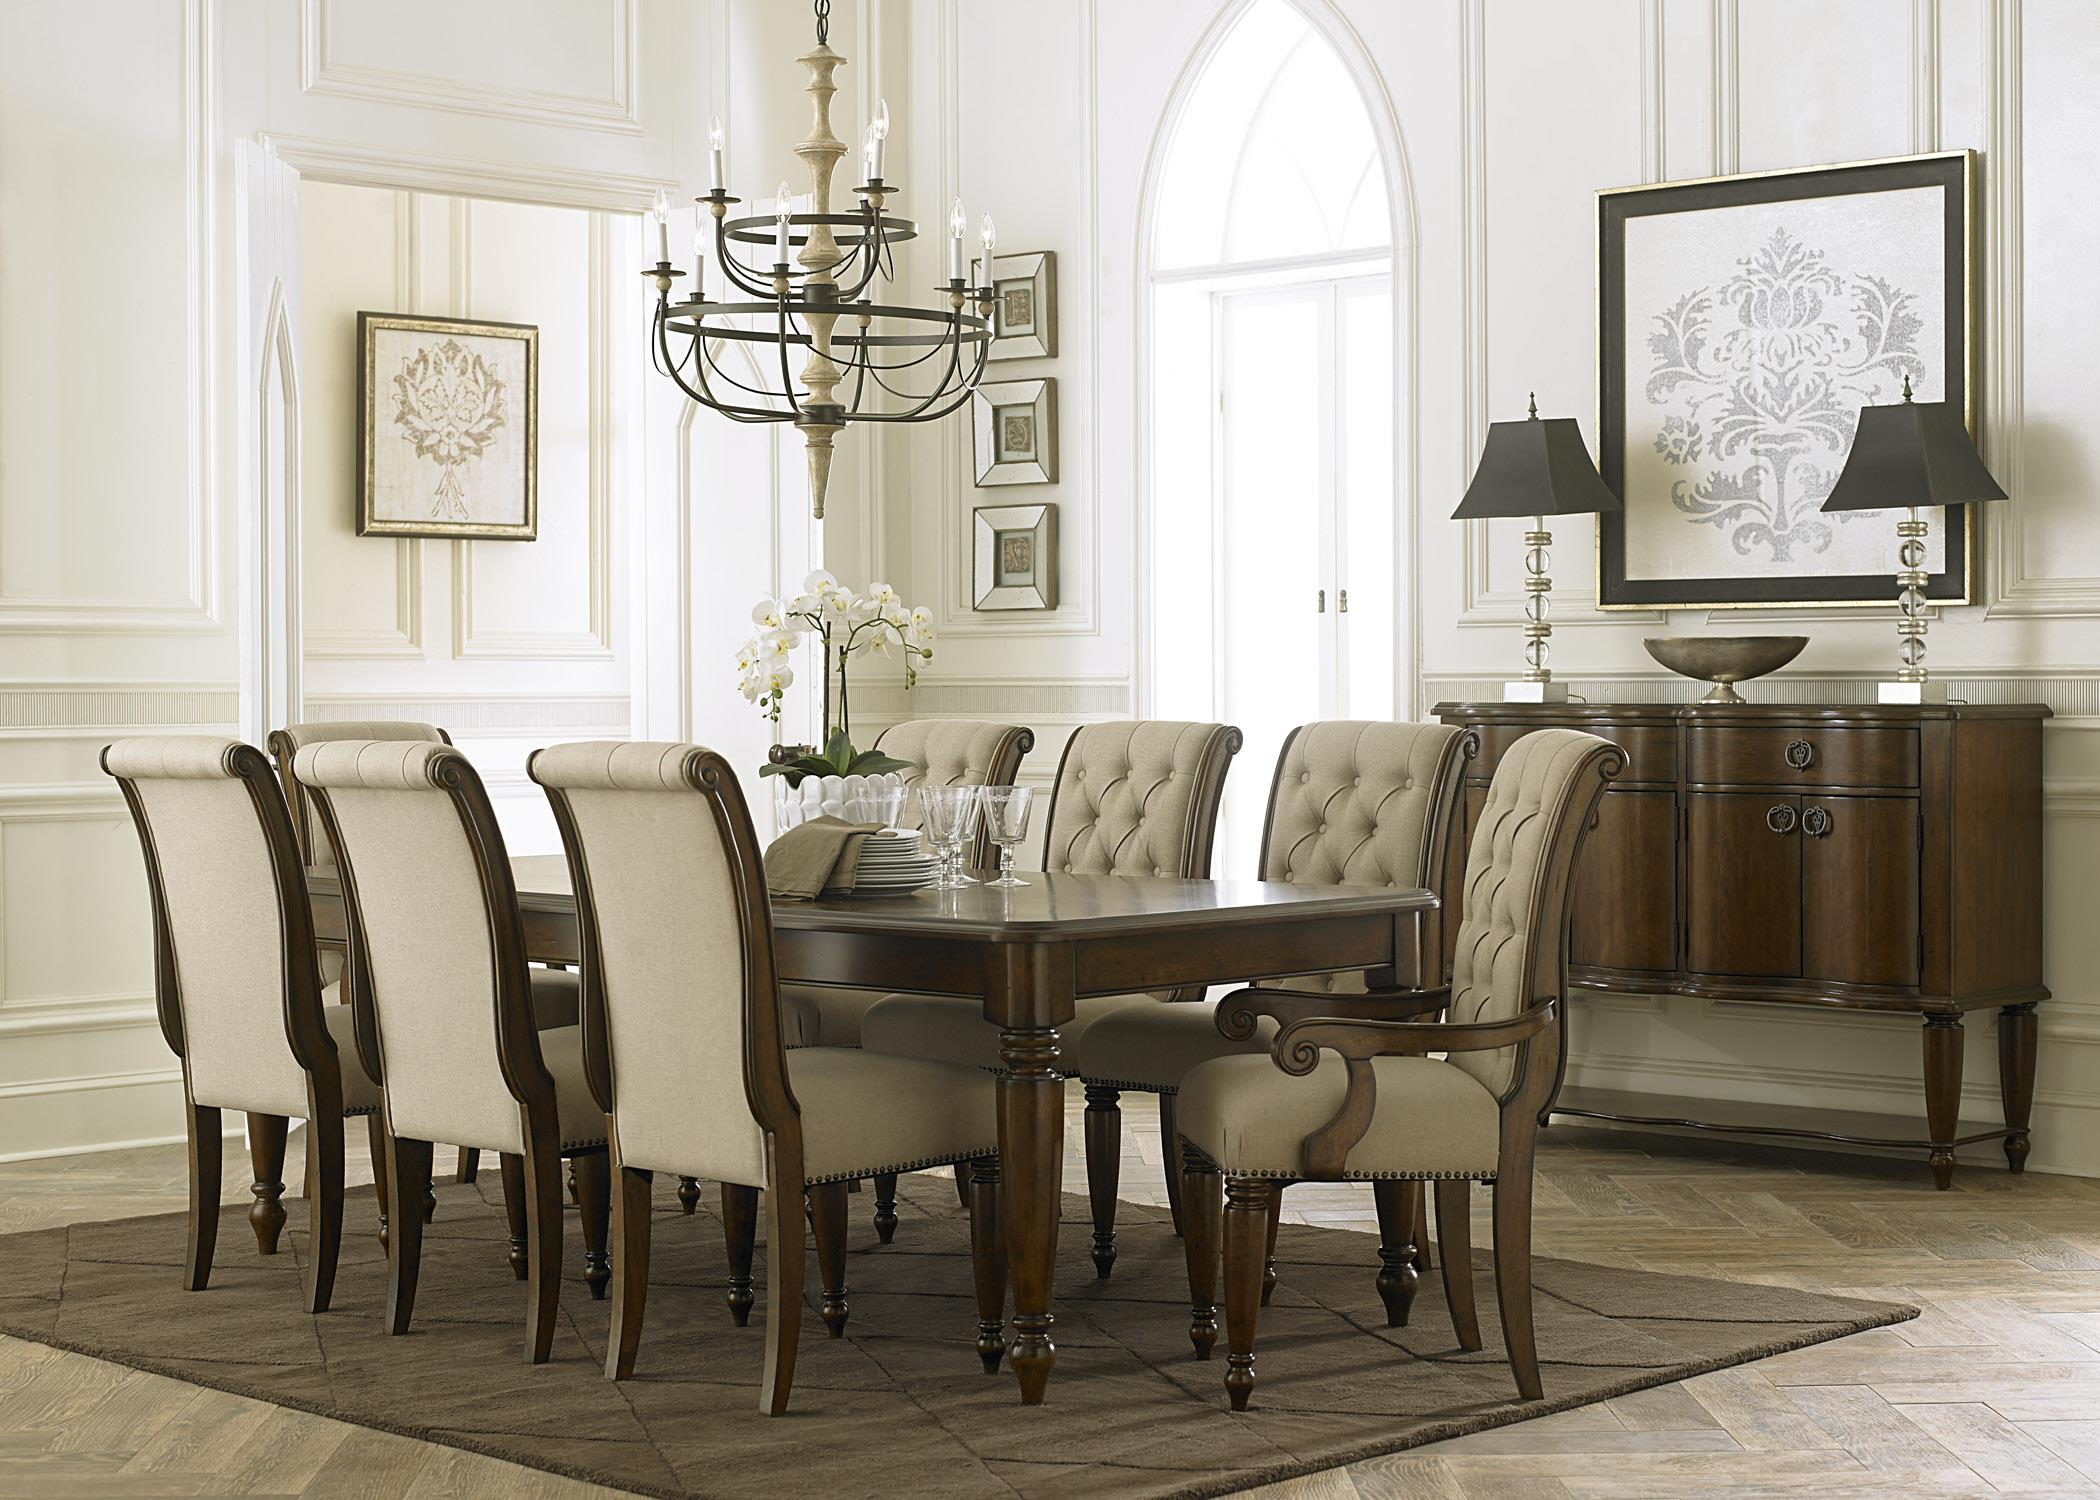 Liberty furniture cotswold formal dining room group for Formal dining room